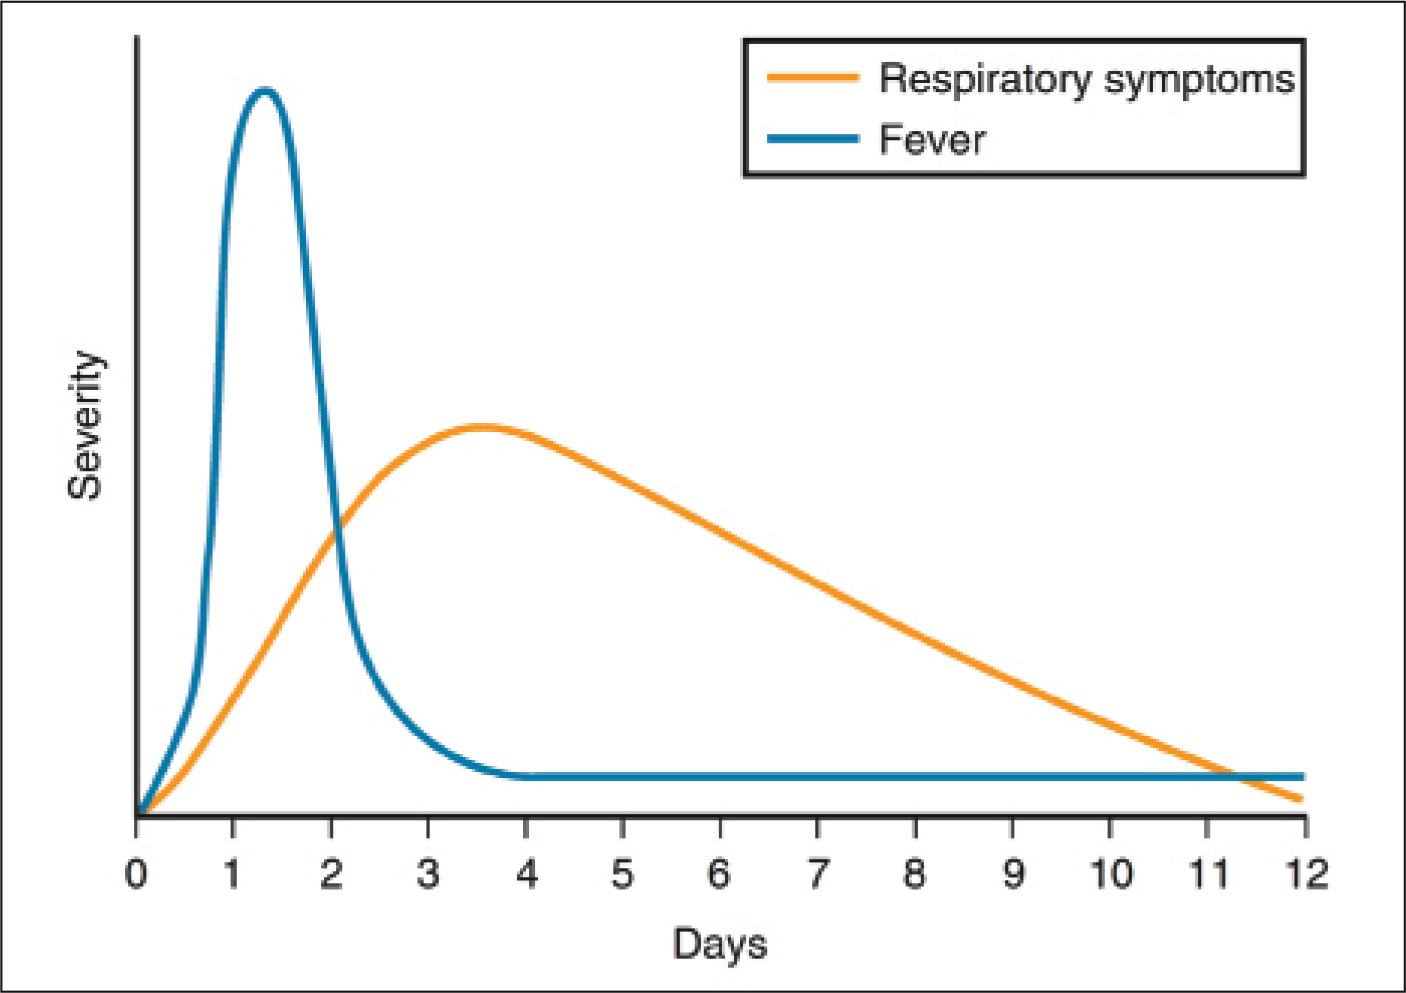 Timeline of course of fever and respiratory tract symptoms in uncomplicated viral upper respiratory infection. Reprinted with the permission of Elsevier from Wald.2